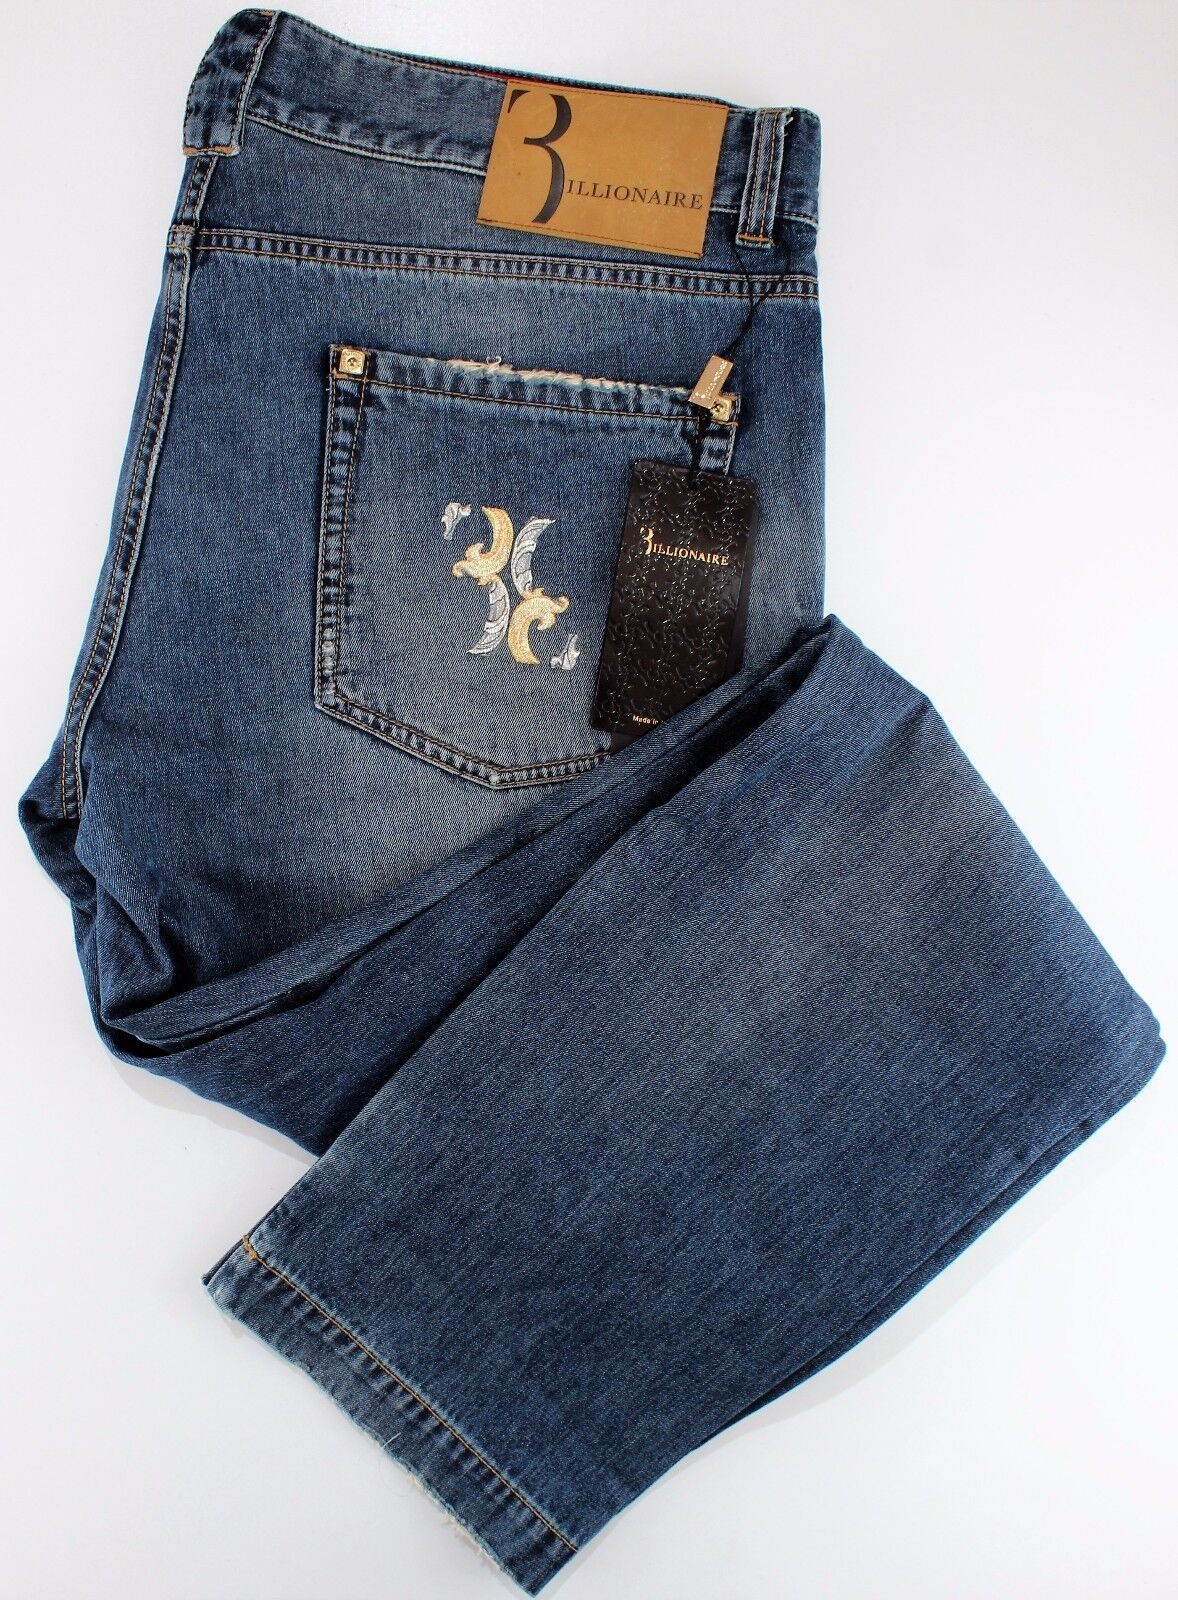 NWT 790  BILLIONAIRE COUTURE JEANS embroidered bluee cotton luxury  us 42